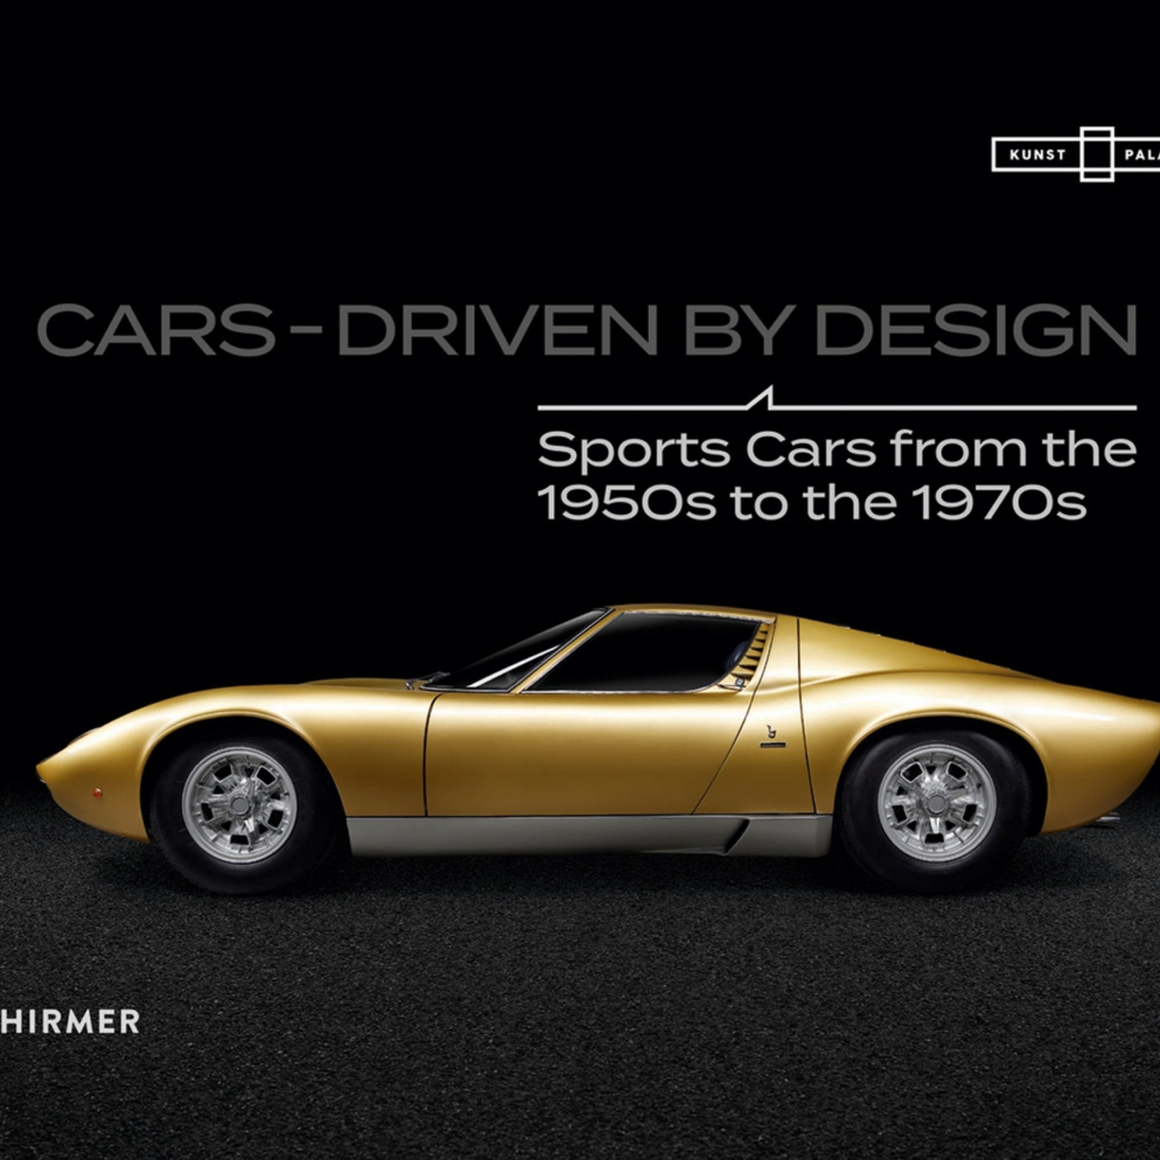 CARS: DRIVEN BY DESIGN